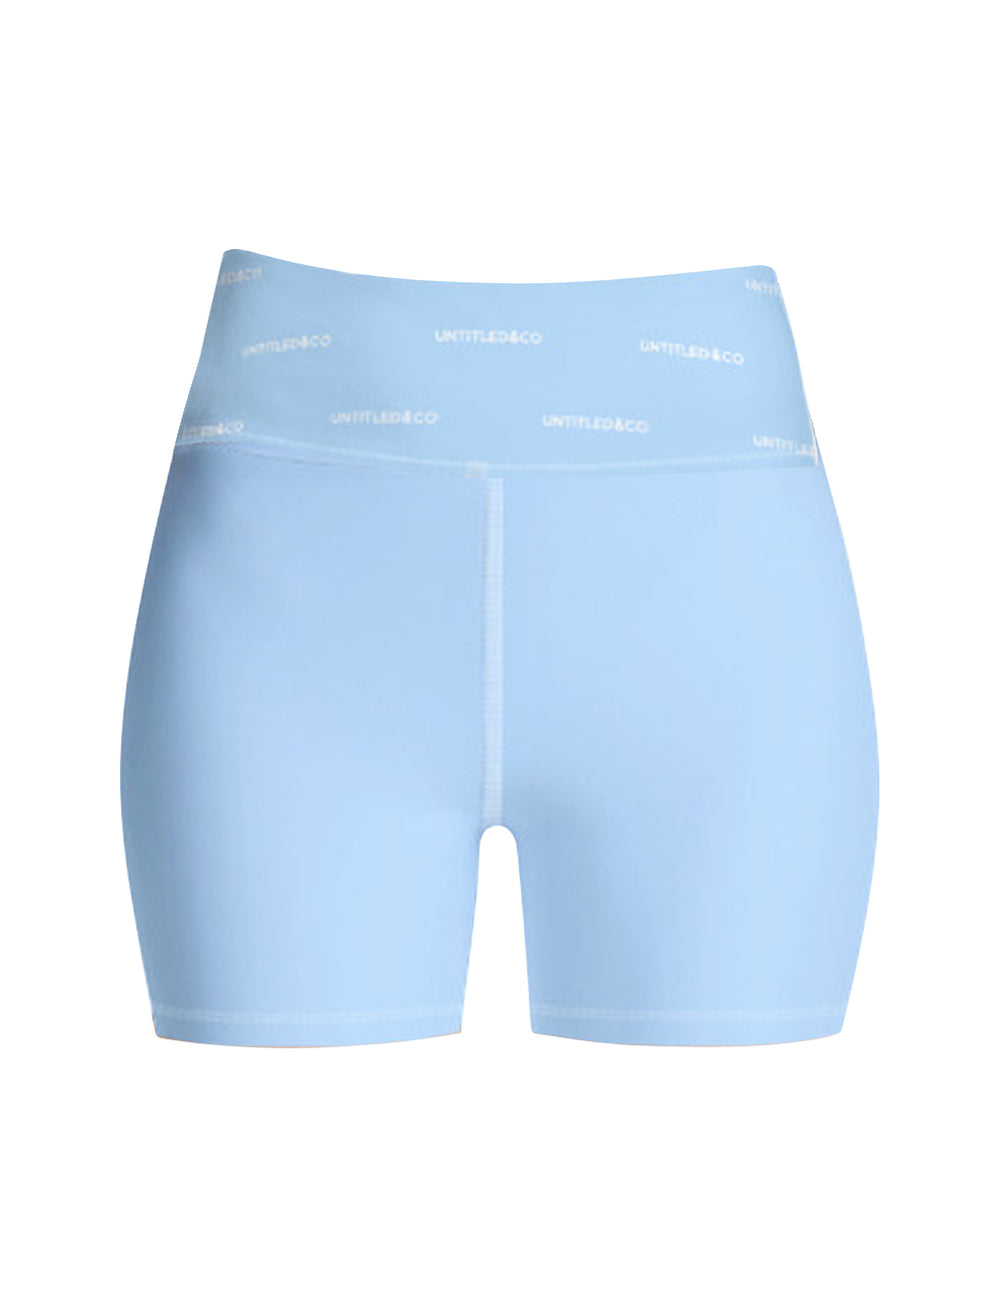 Rylee Shorts in Light Blue with White